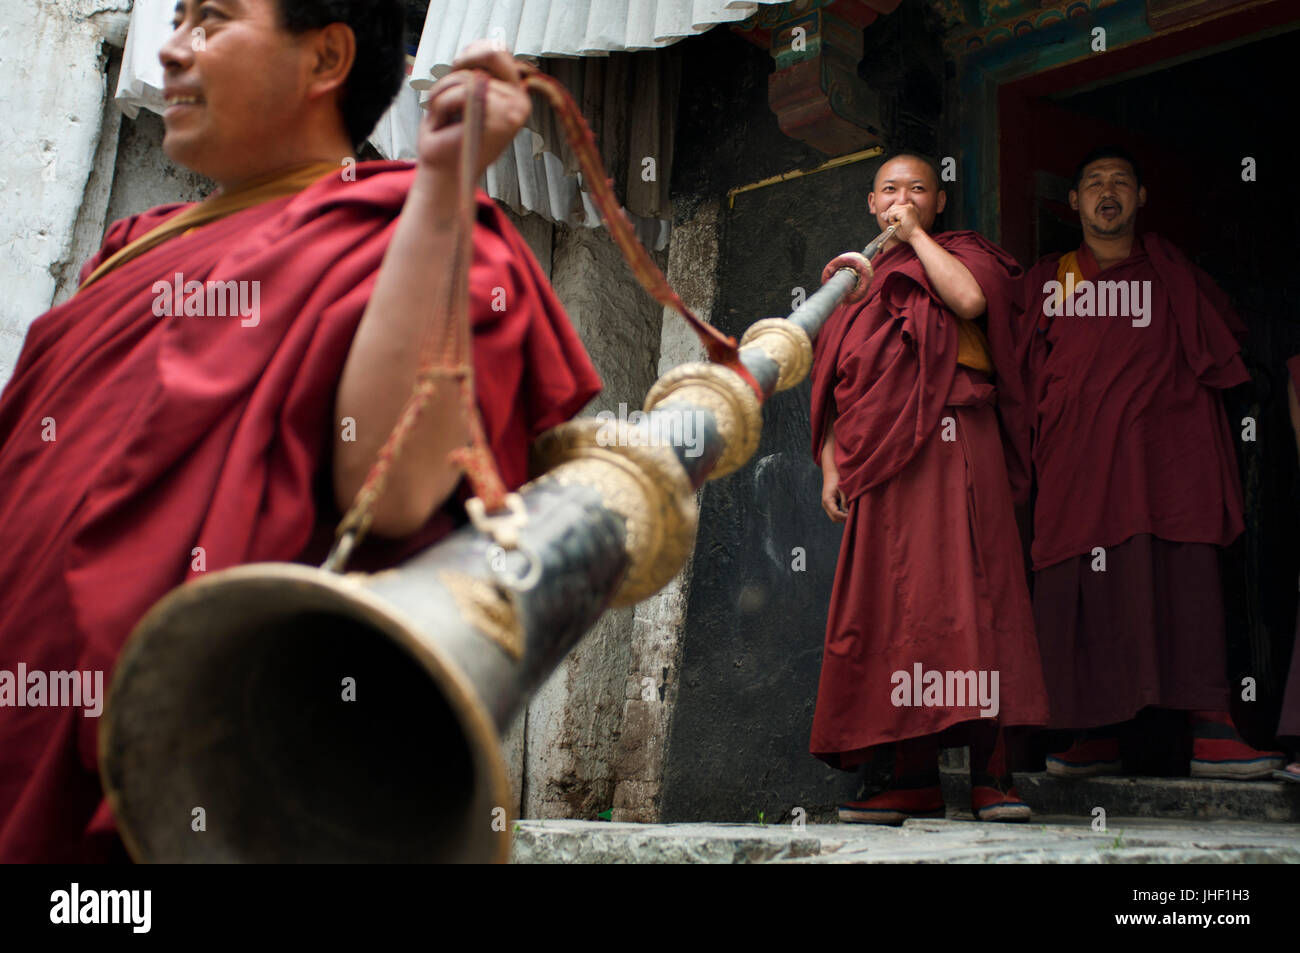 Monks playing the Tibetan horn inside Tashilumpo Monastery at Shigatse, Tibet, China. - Stock Image